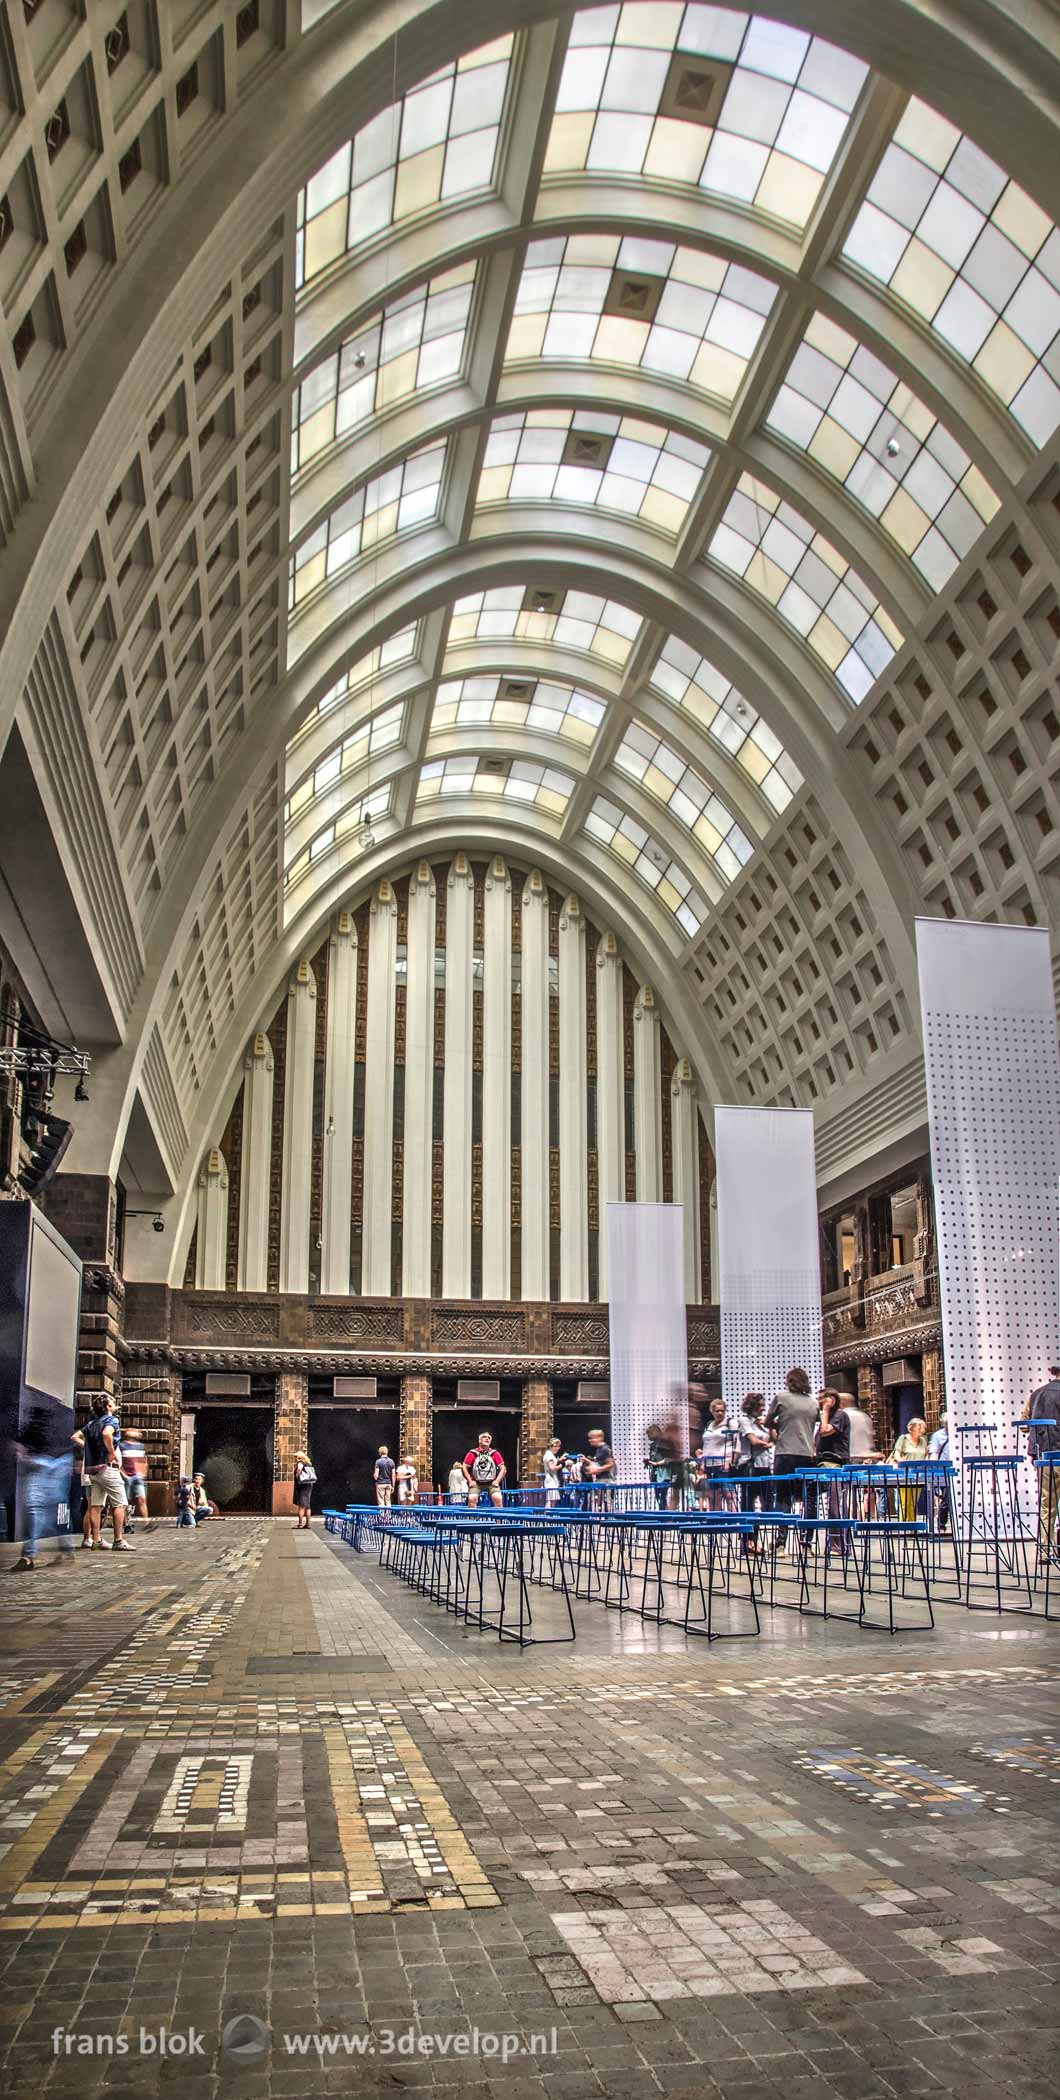 Image of the large hall of the Post Office on Coolsingel in Rotterdam, when it was op en to the public during the Rotterdam Architecture Month in 2019